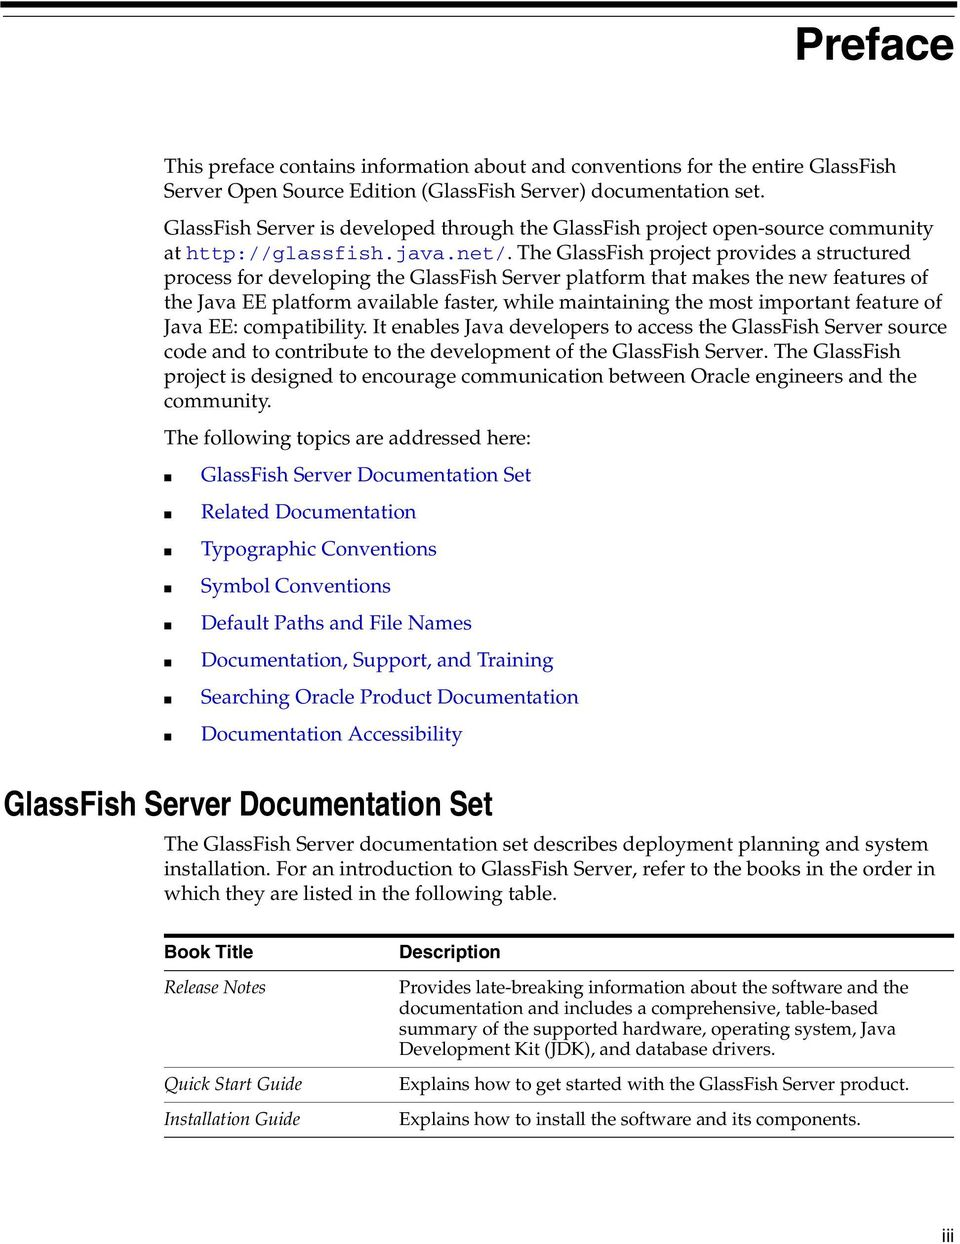 The GlassFish project provides a structured process for developing the GlassFish Server platform that makes the new features of the Java EE platform available faster, while maintaining the most